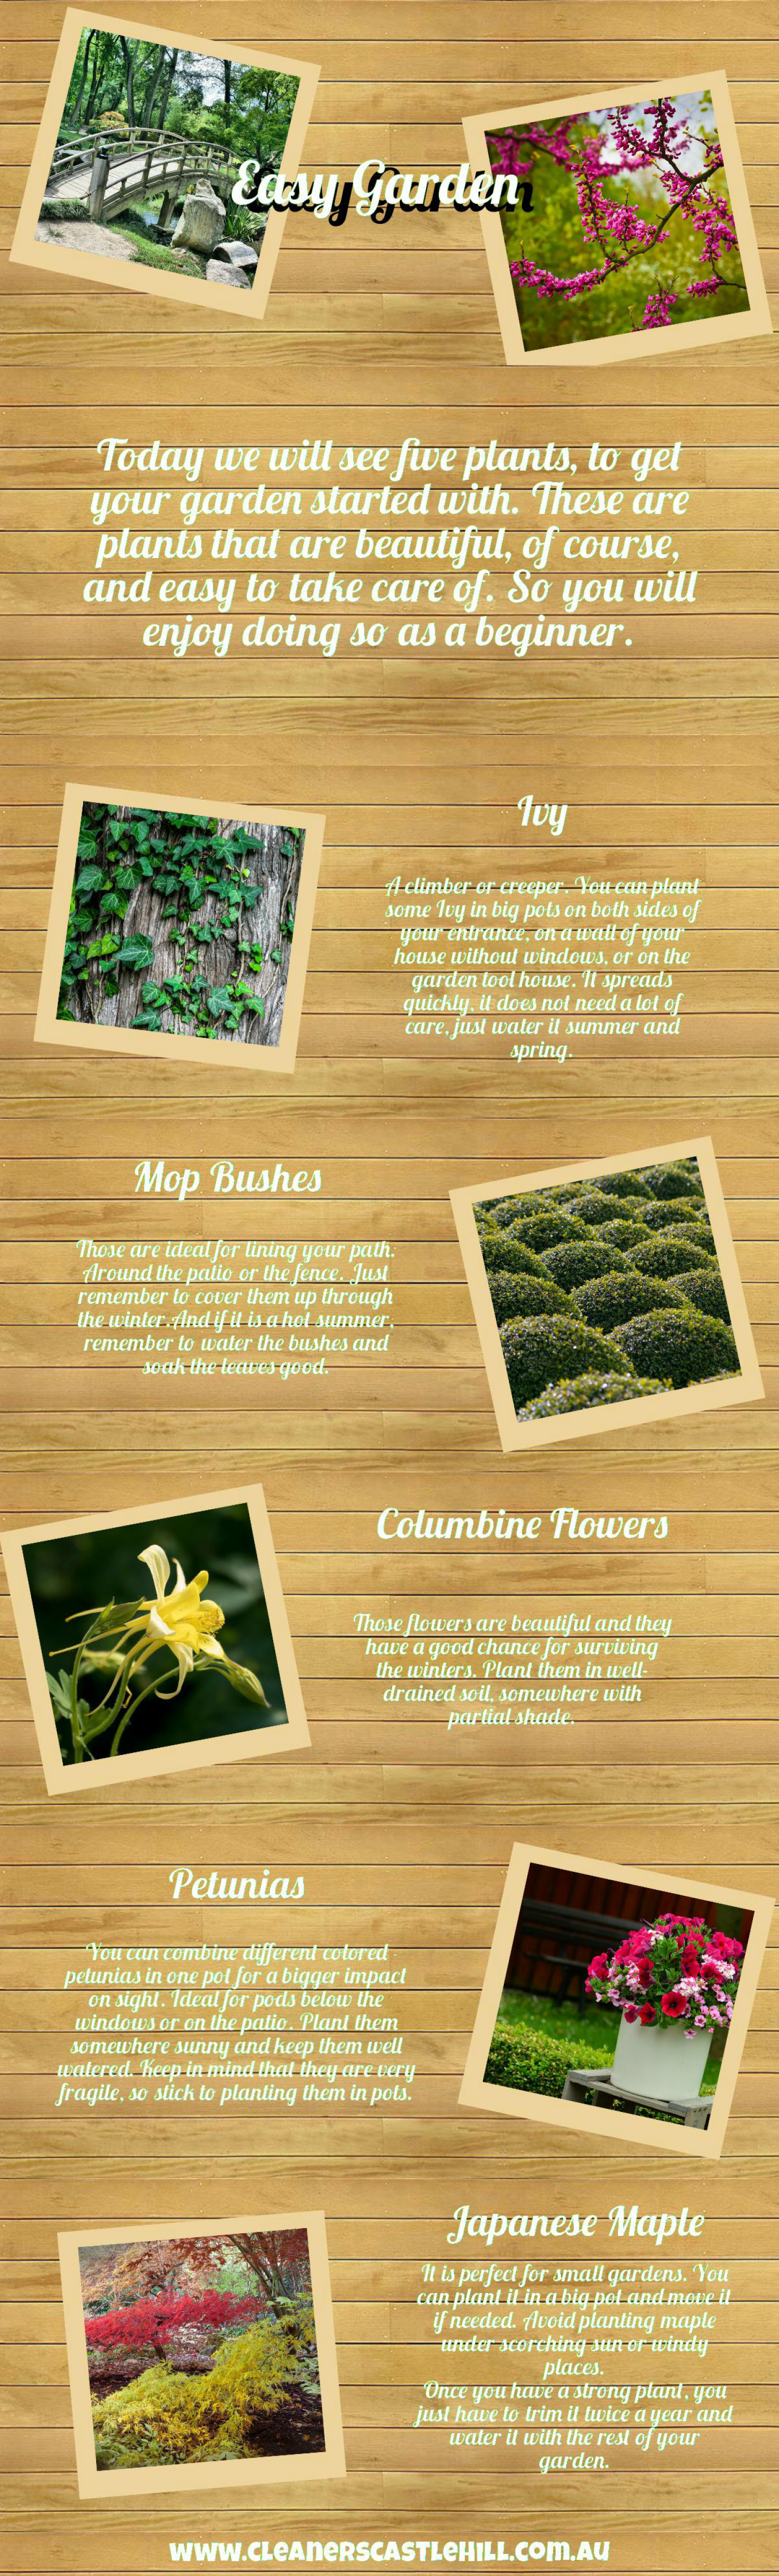 5 Plants for Beginners Infographic